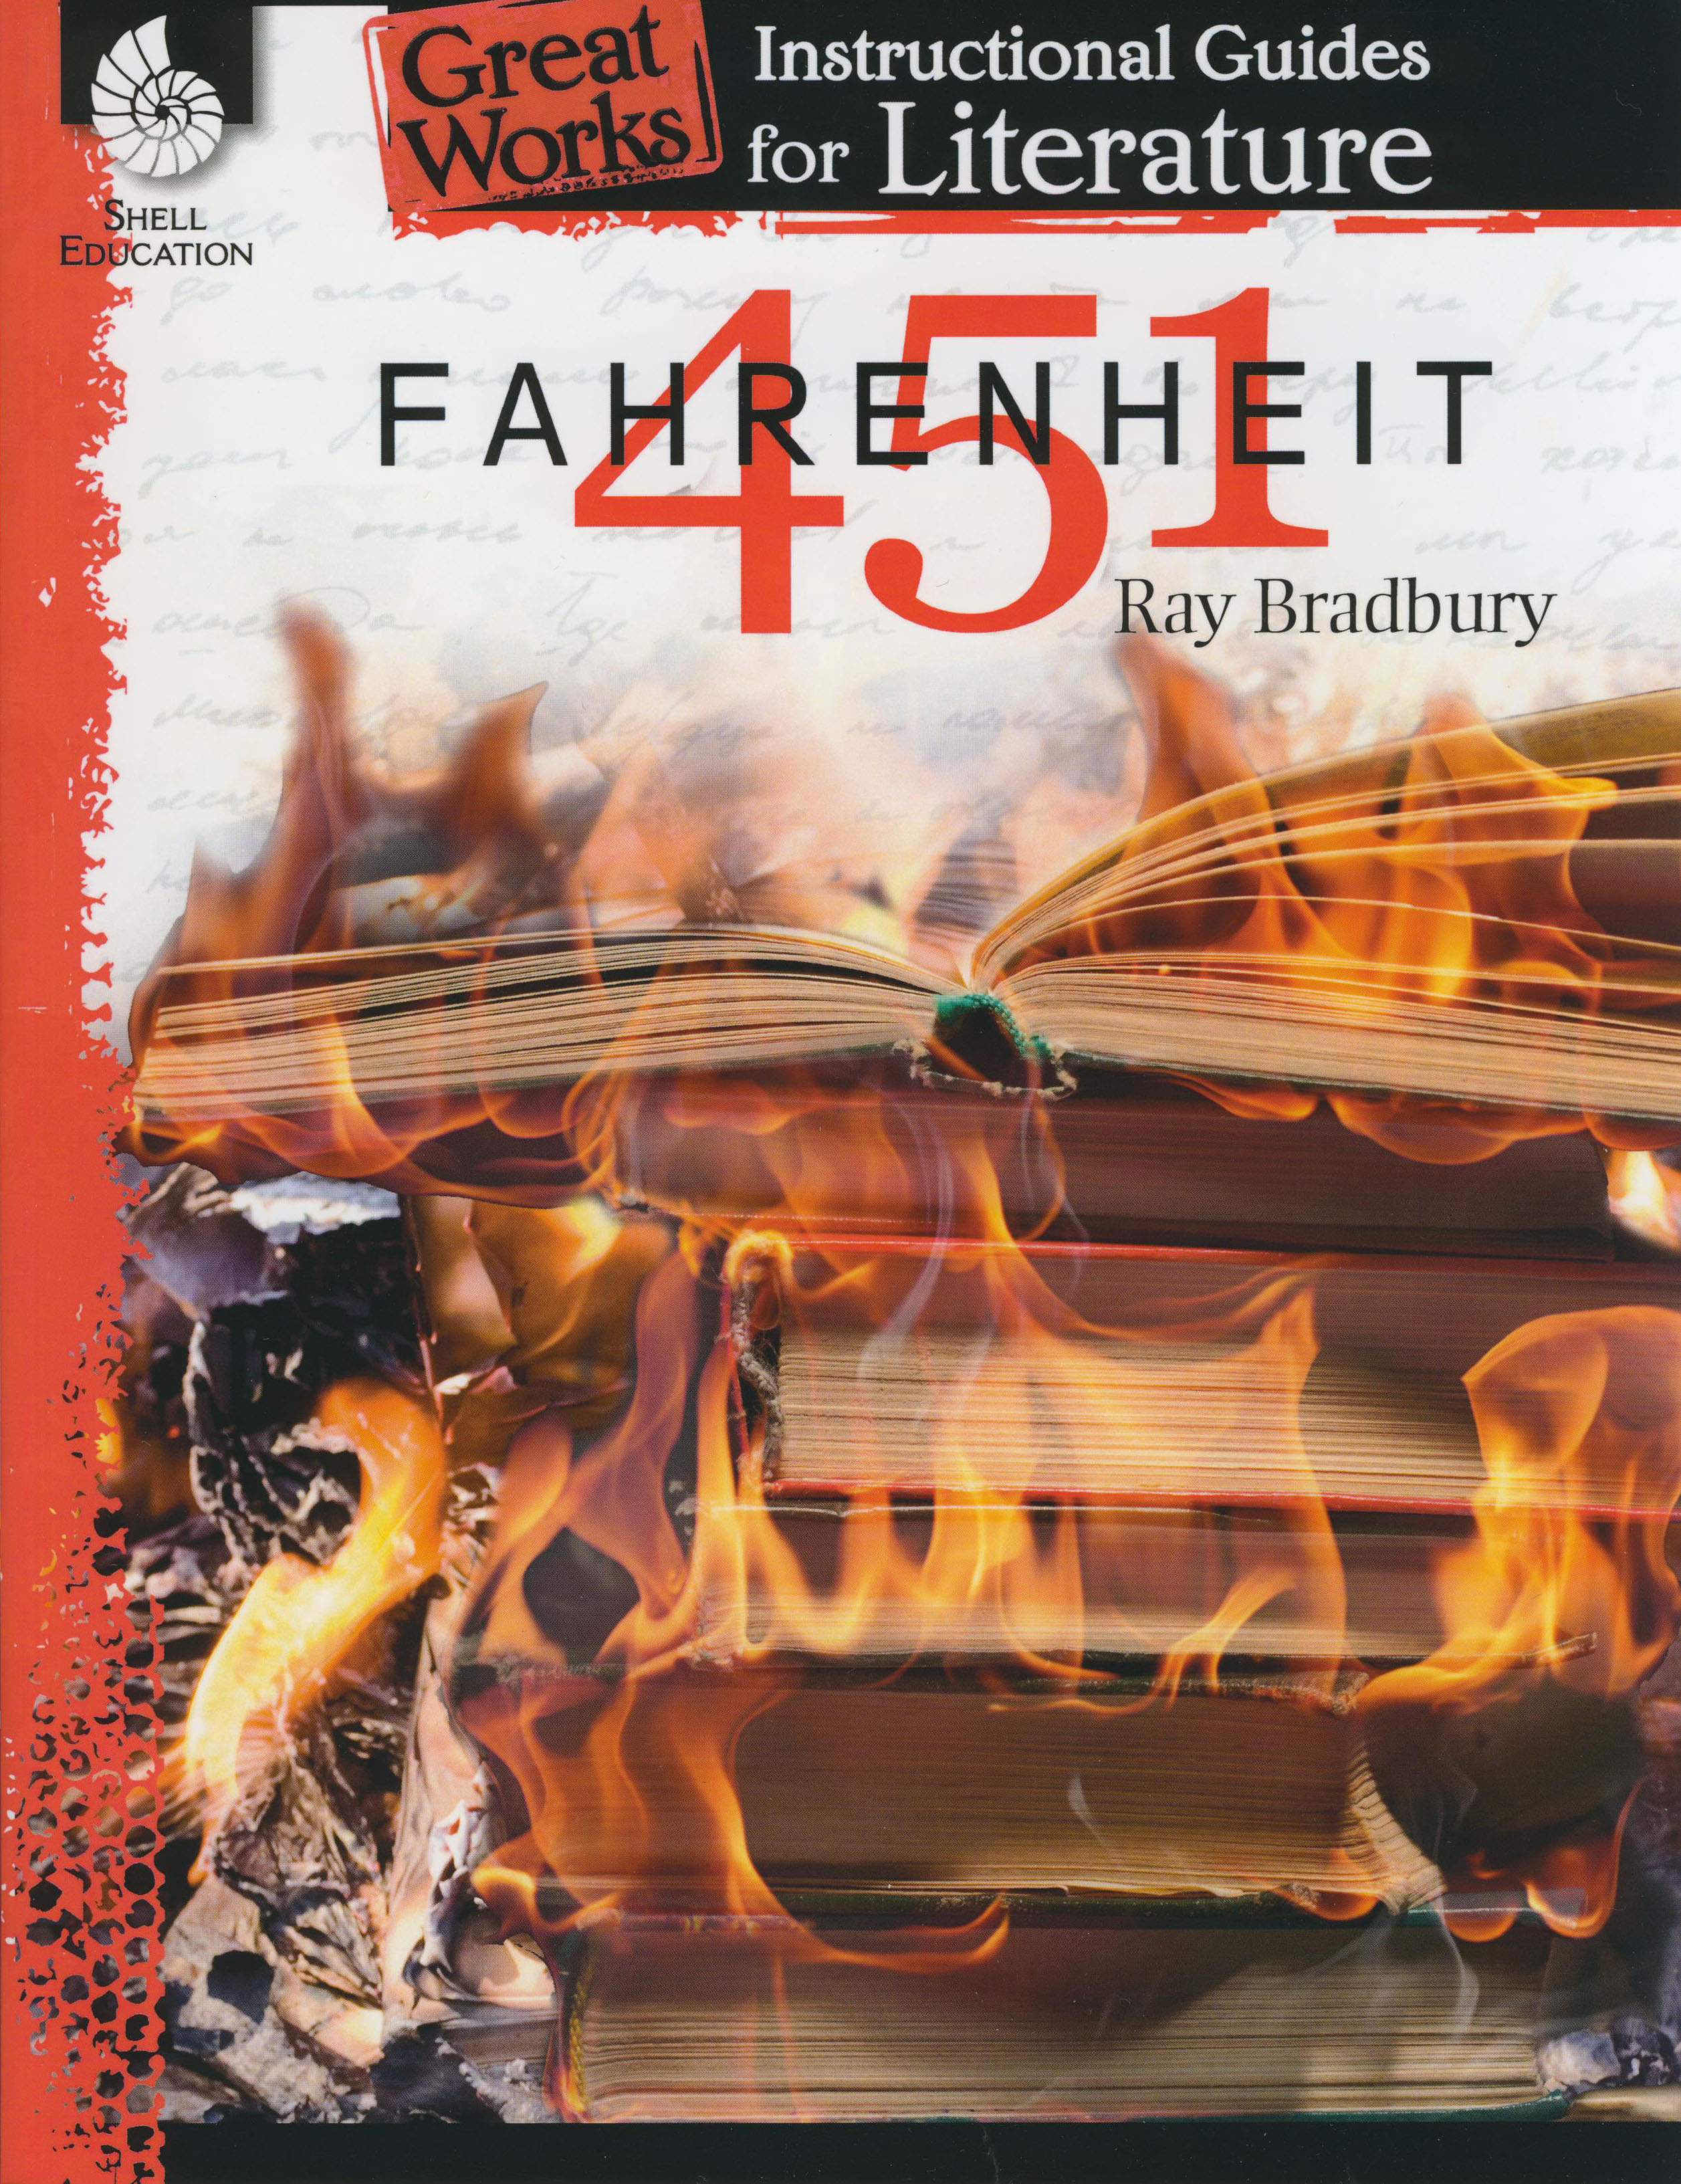 Great Works Instructional Guide for Literature: Fahrenheit 451